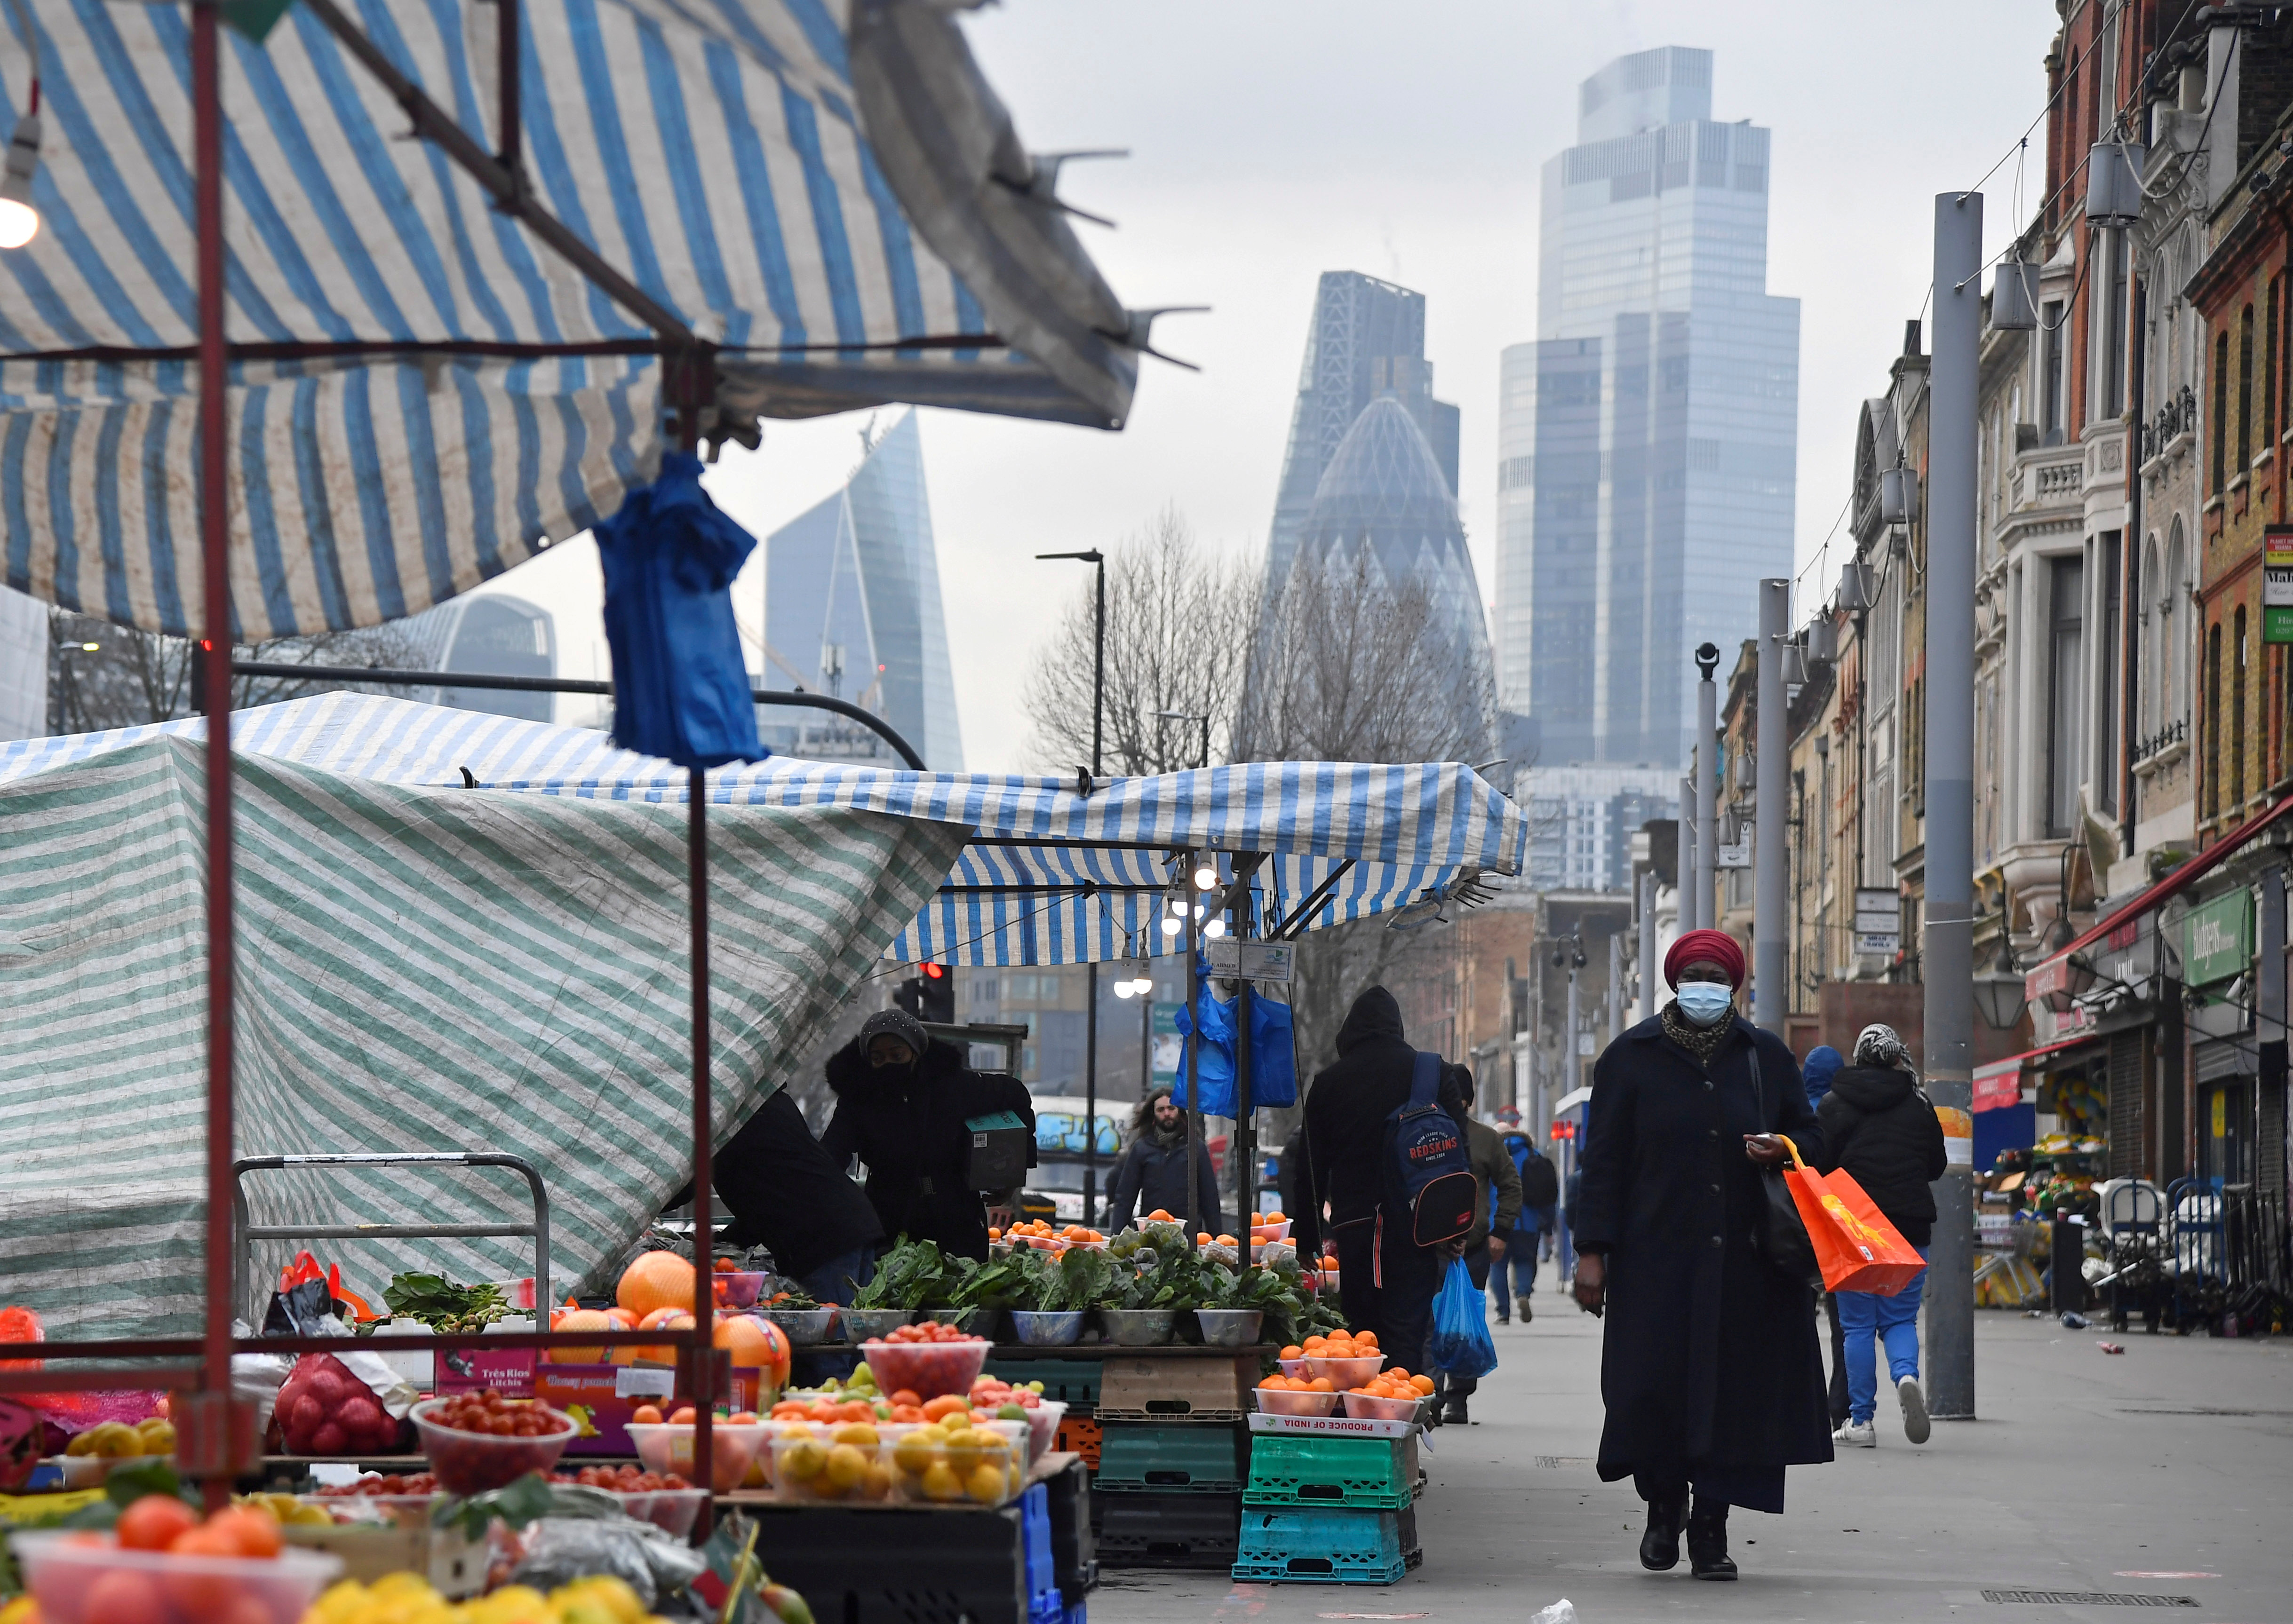 People shop at market stalls, with skyscrapers of the CIty of London financial district seen behind, amid the coronavirus disease (COVID-19) pandemic, in London, Britain, January 15, 2021. REUTERS/Toby Melville/File Photo